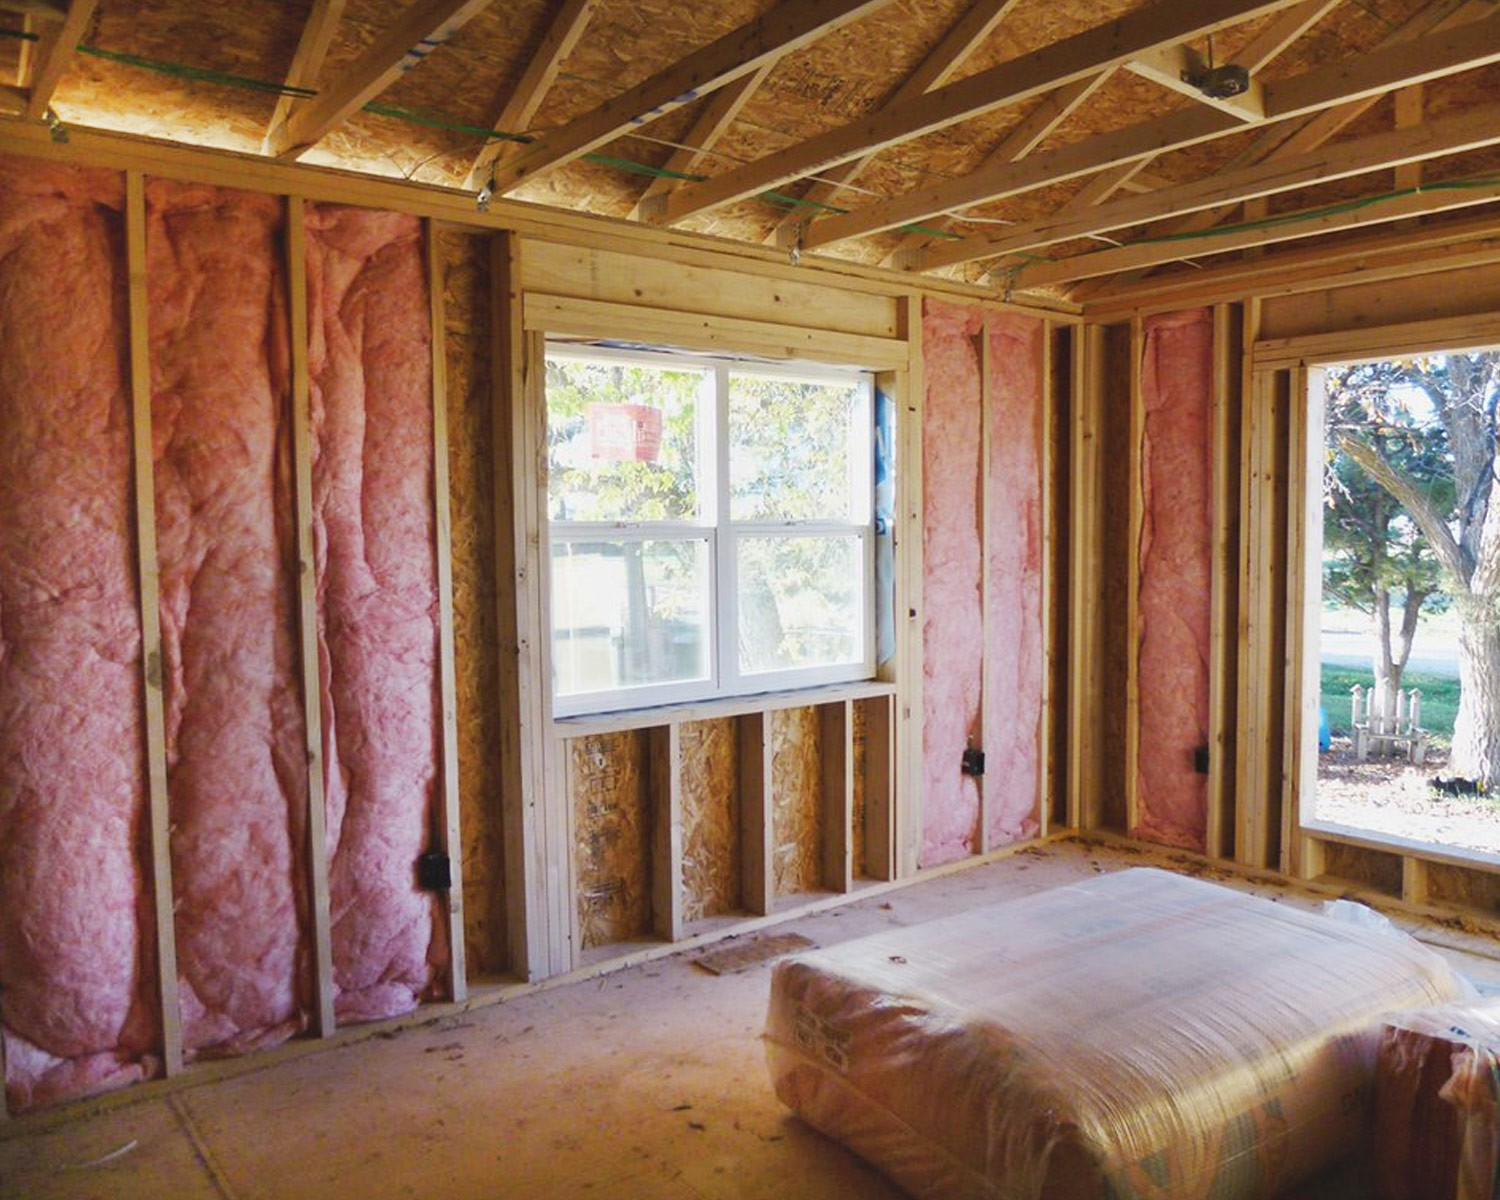 Mass Save home insulation program by MDH Construction in Plymouth, MA